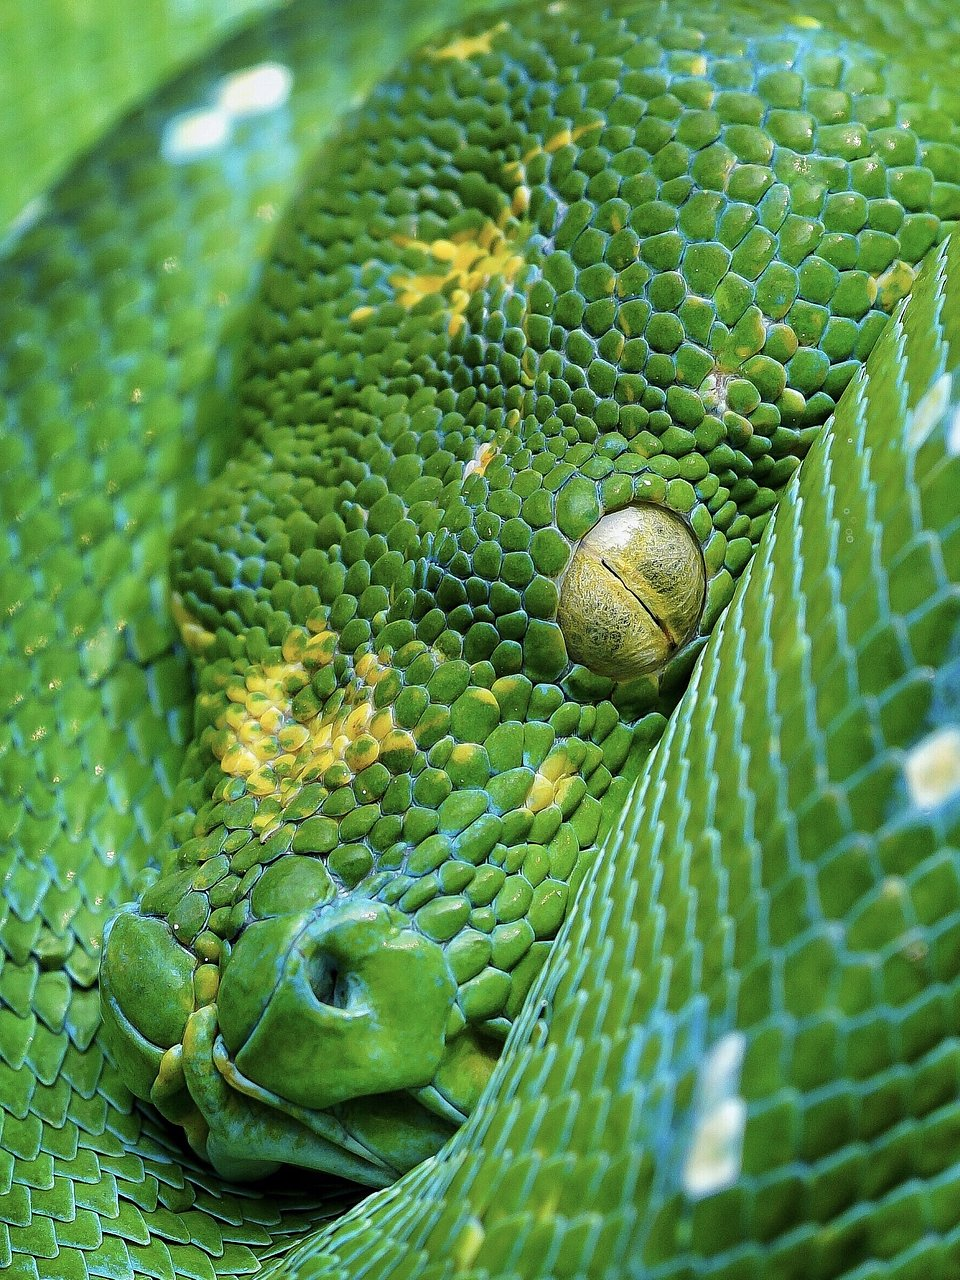 A giant snake angrily awakens from its slumber, showing off its bright lime-colored eyes. (Agora)